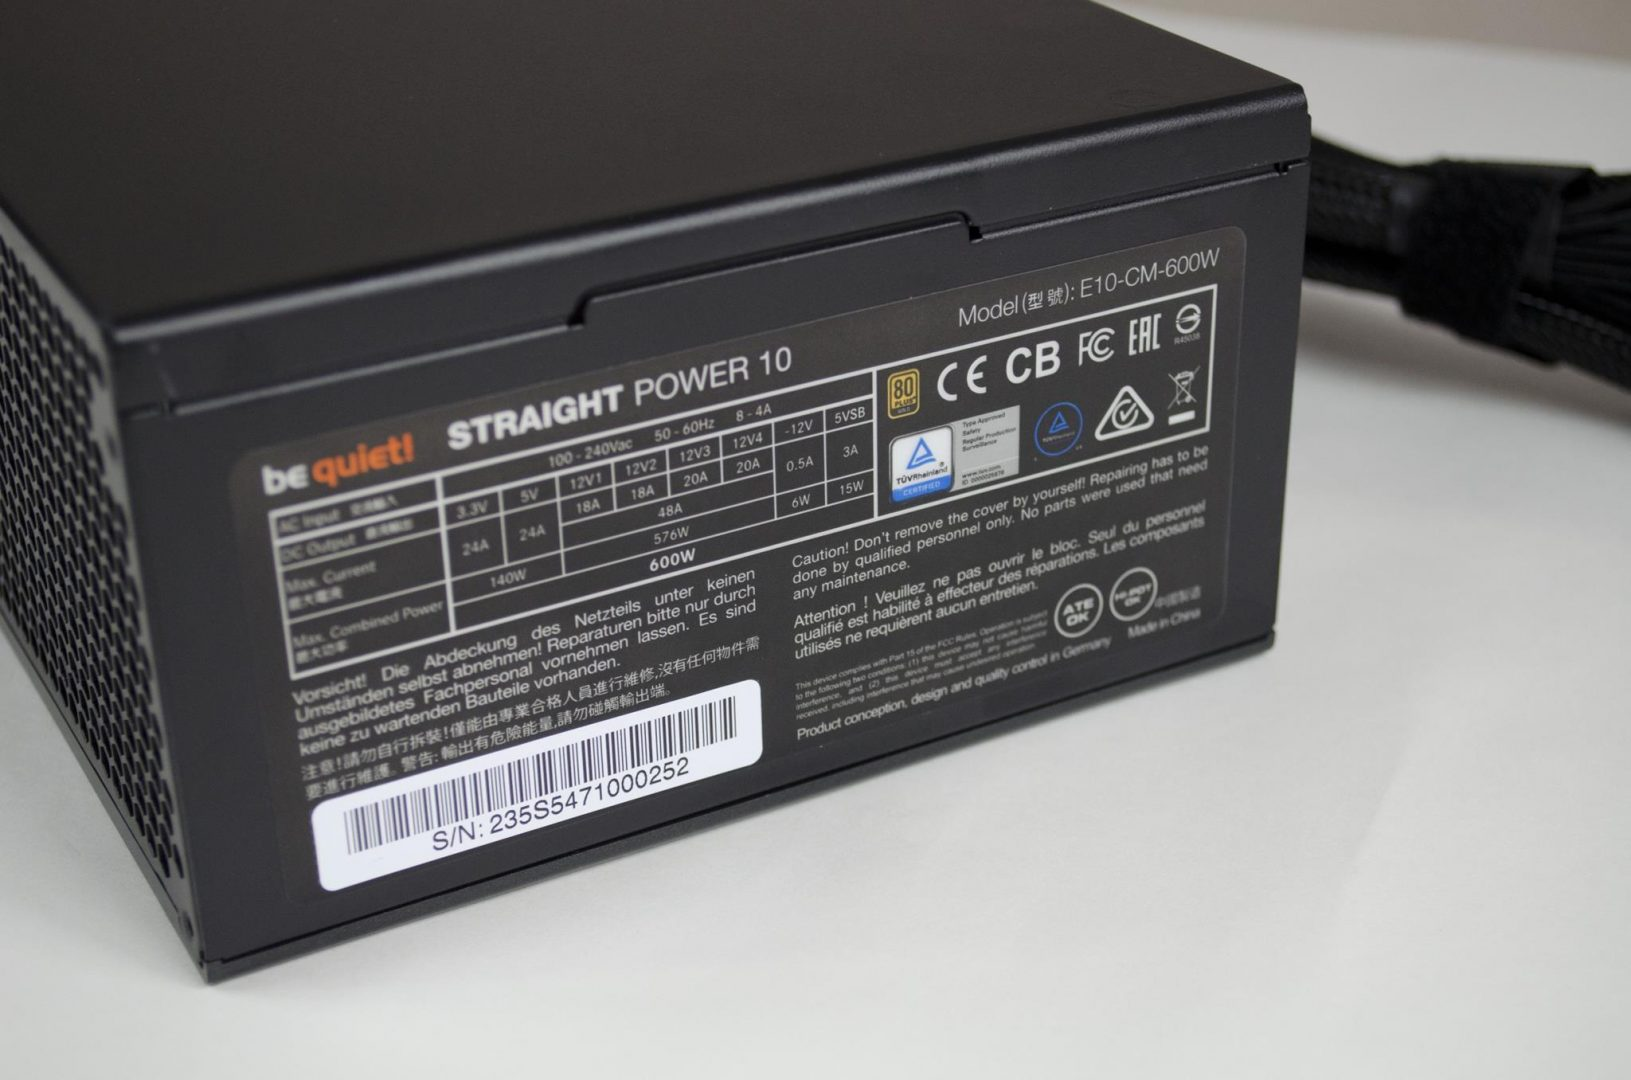 be quiet! Straight Power 10 600W Power Supply_9